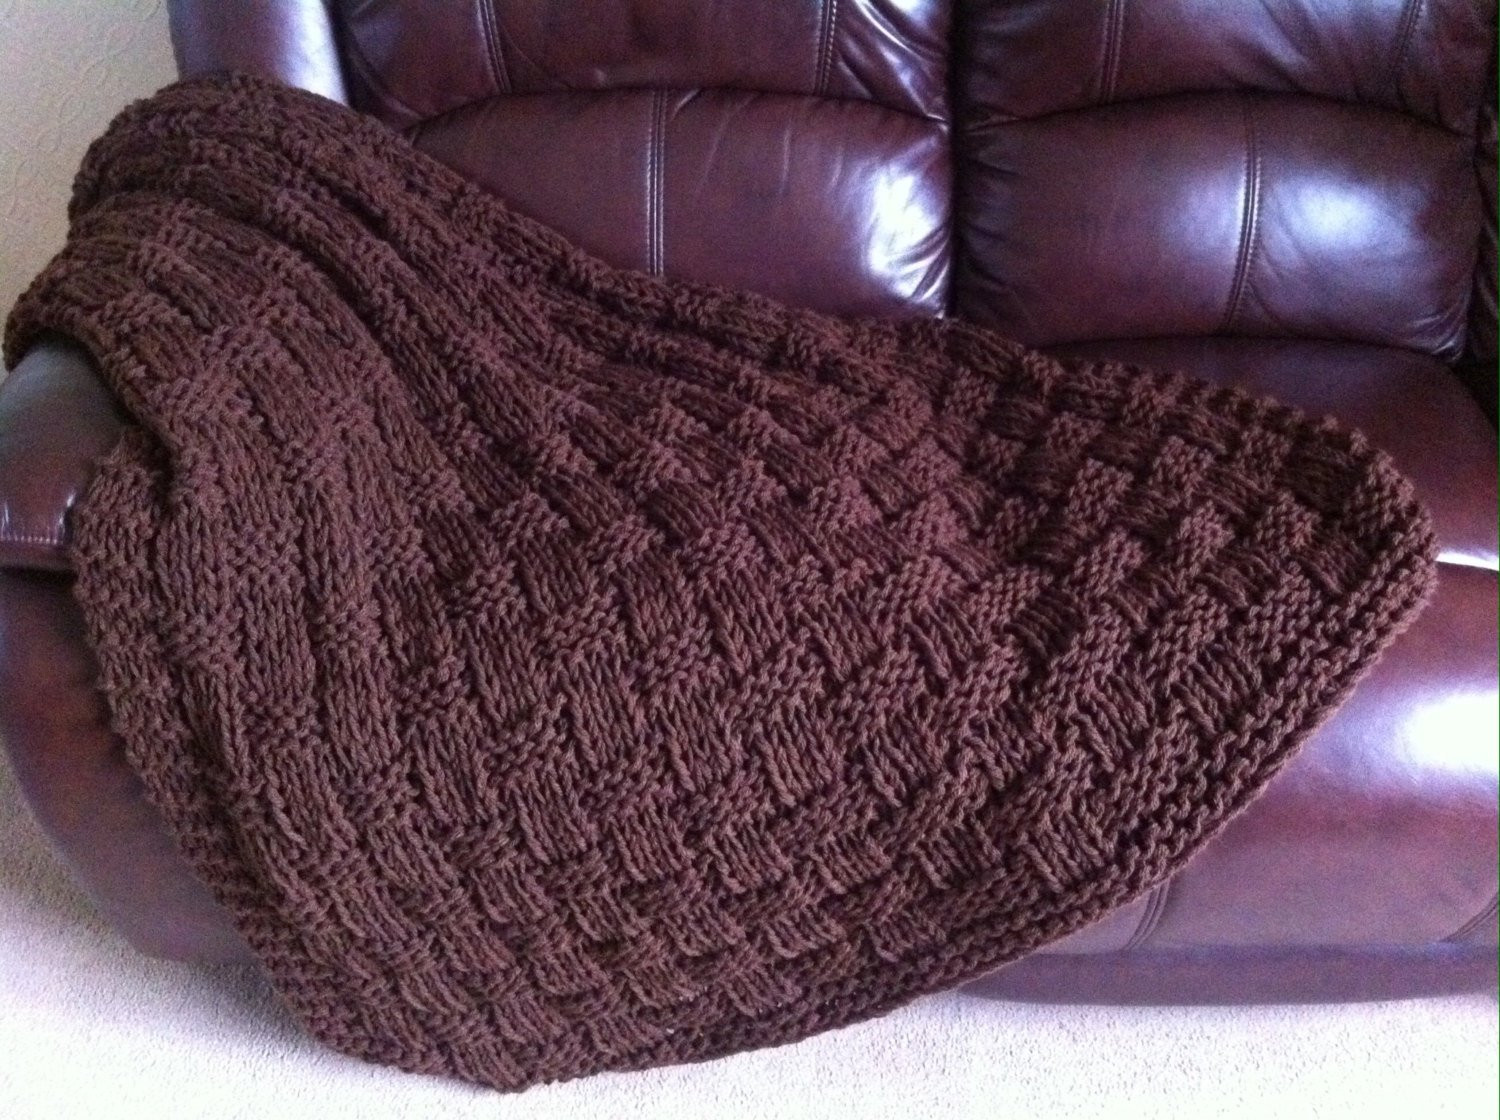 Knitted Throw Lovely Chunky Basket Weave Hand Knit Blanket Throw Chocolate Of Wonderful 48 Images Knitted Throw